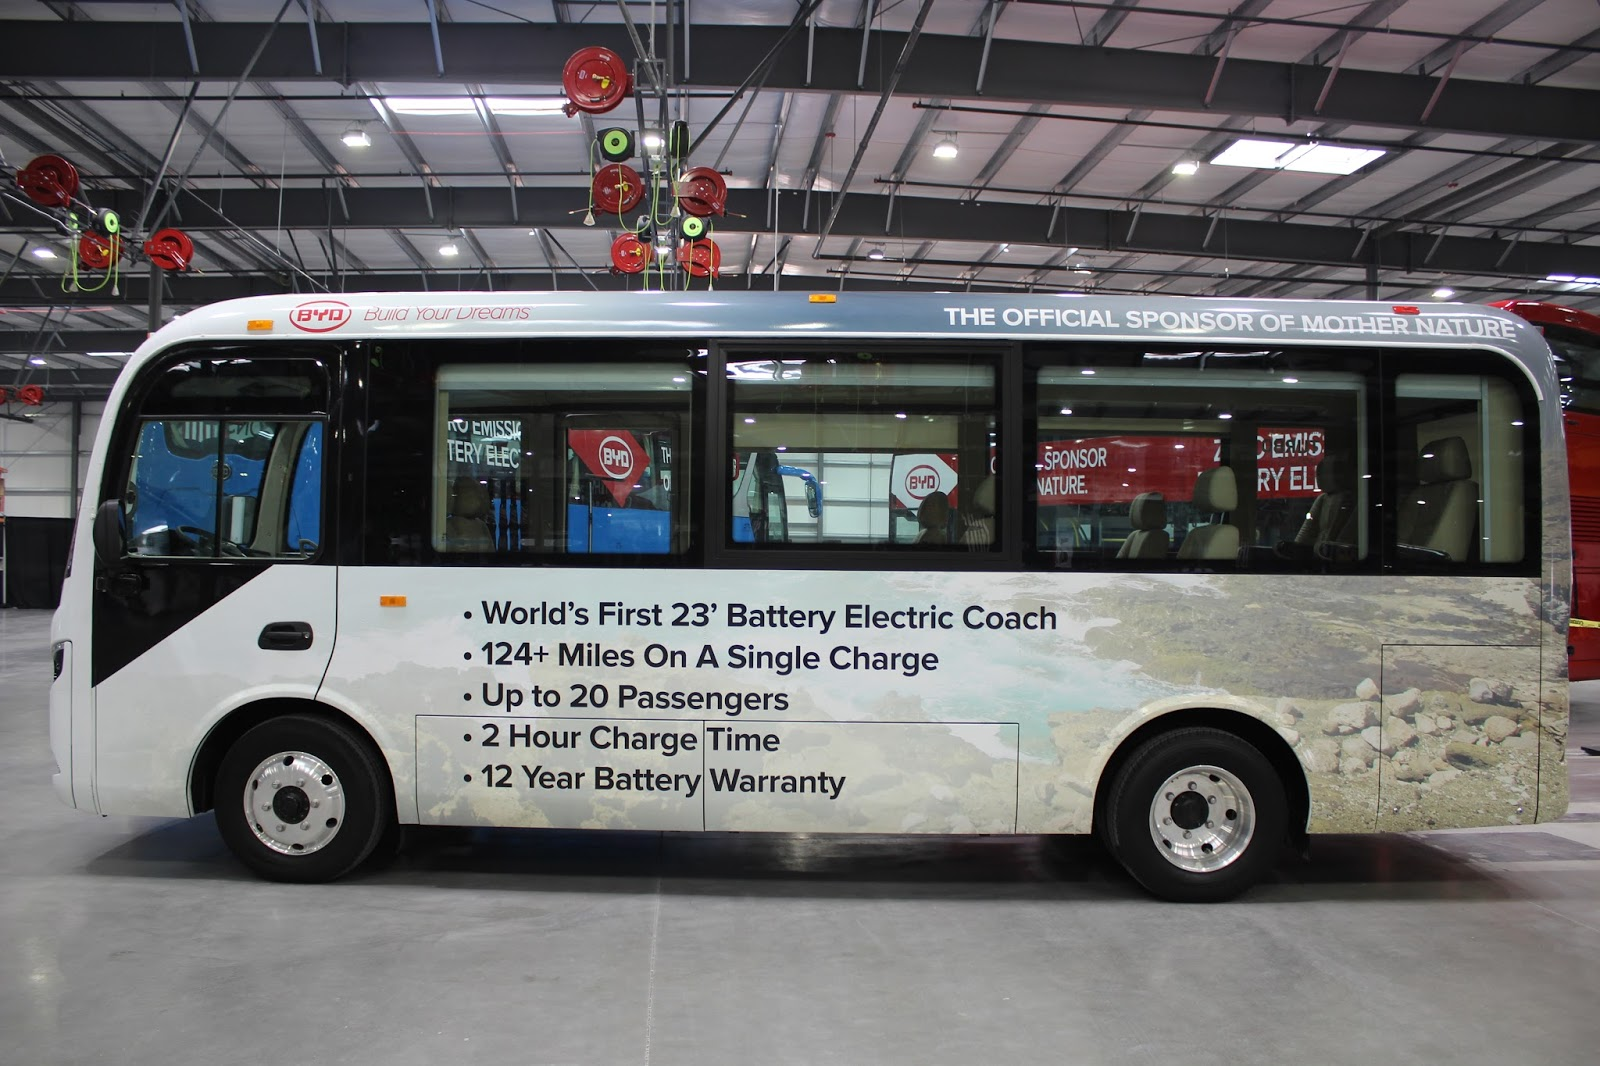 The Auto Advisor Group: BYD EXPANDS ELECTRIC BUS